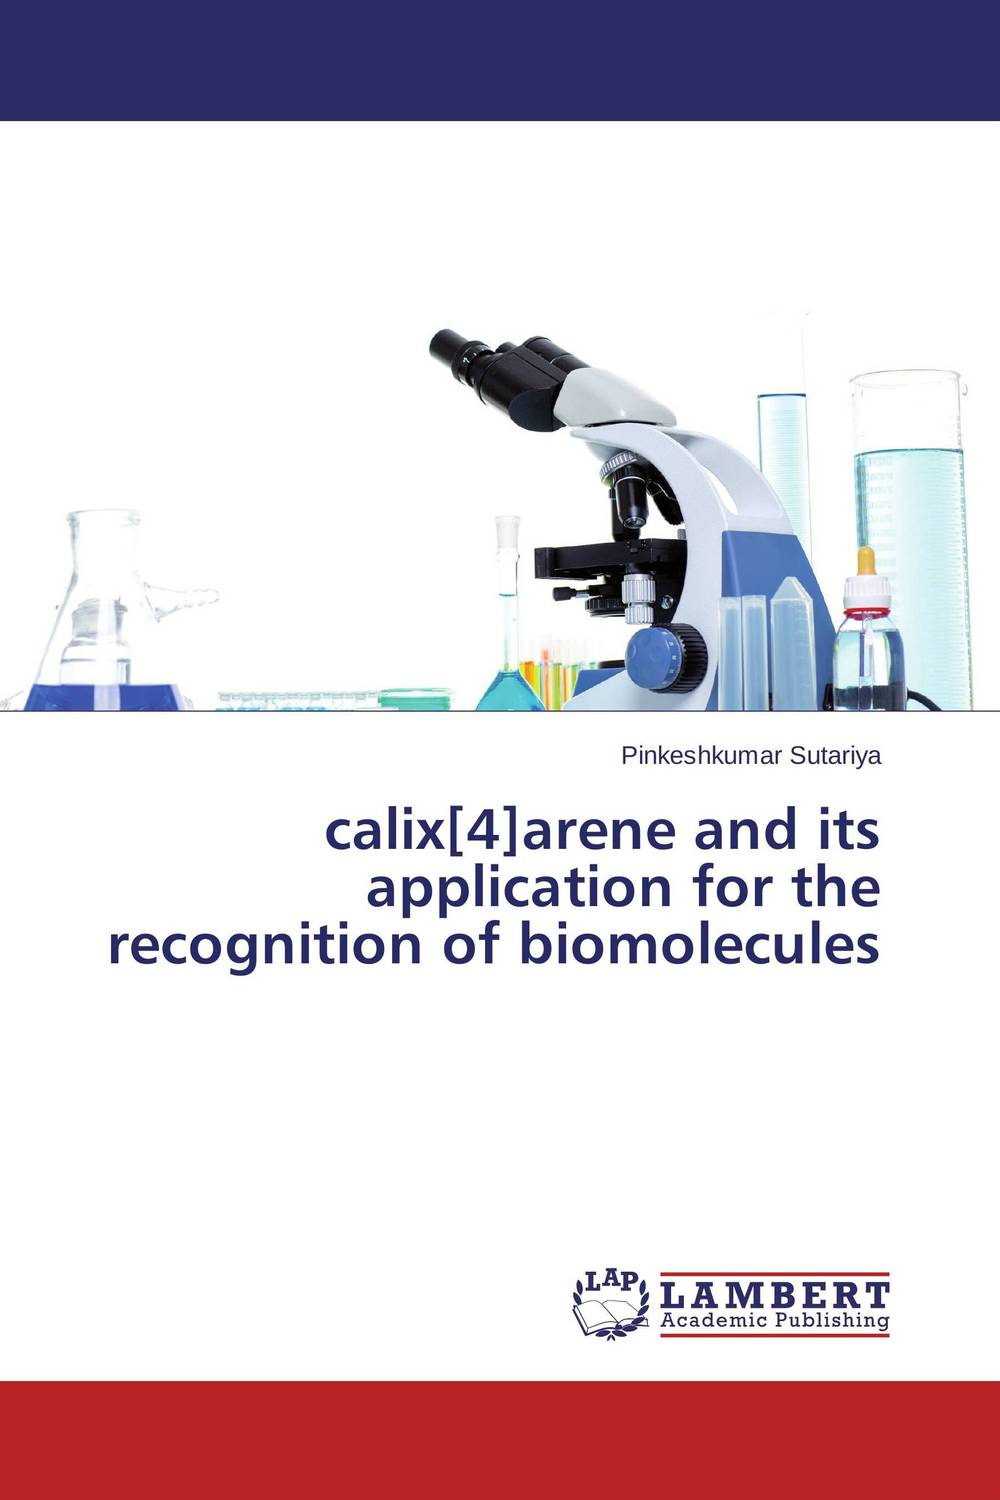 calix[4]arene and its application for the recognition of biomolecules сумка rebecca minkoff hs16efrx25 001